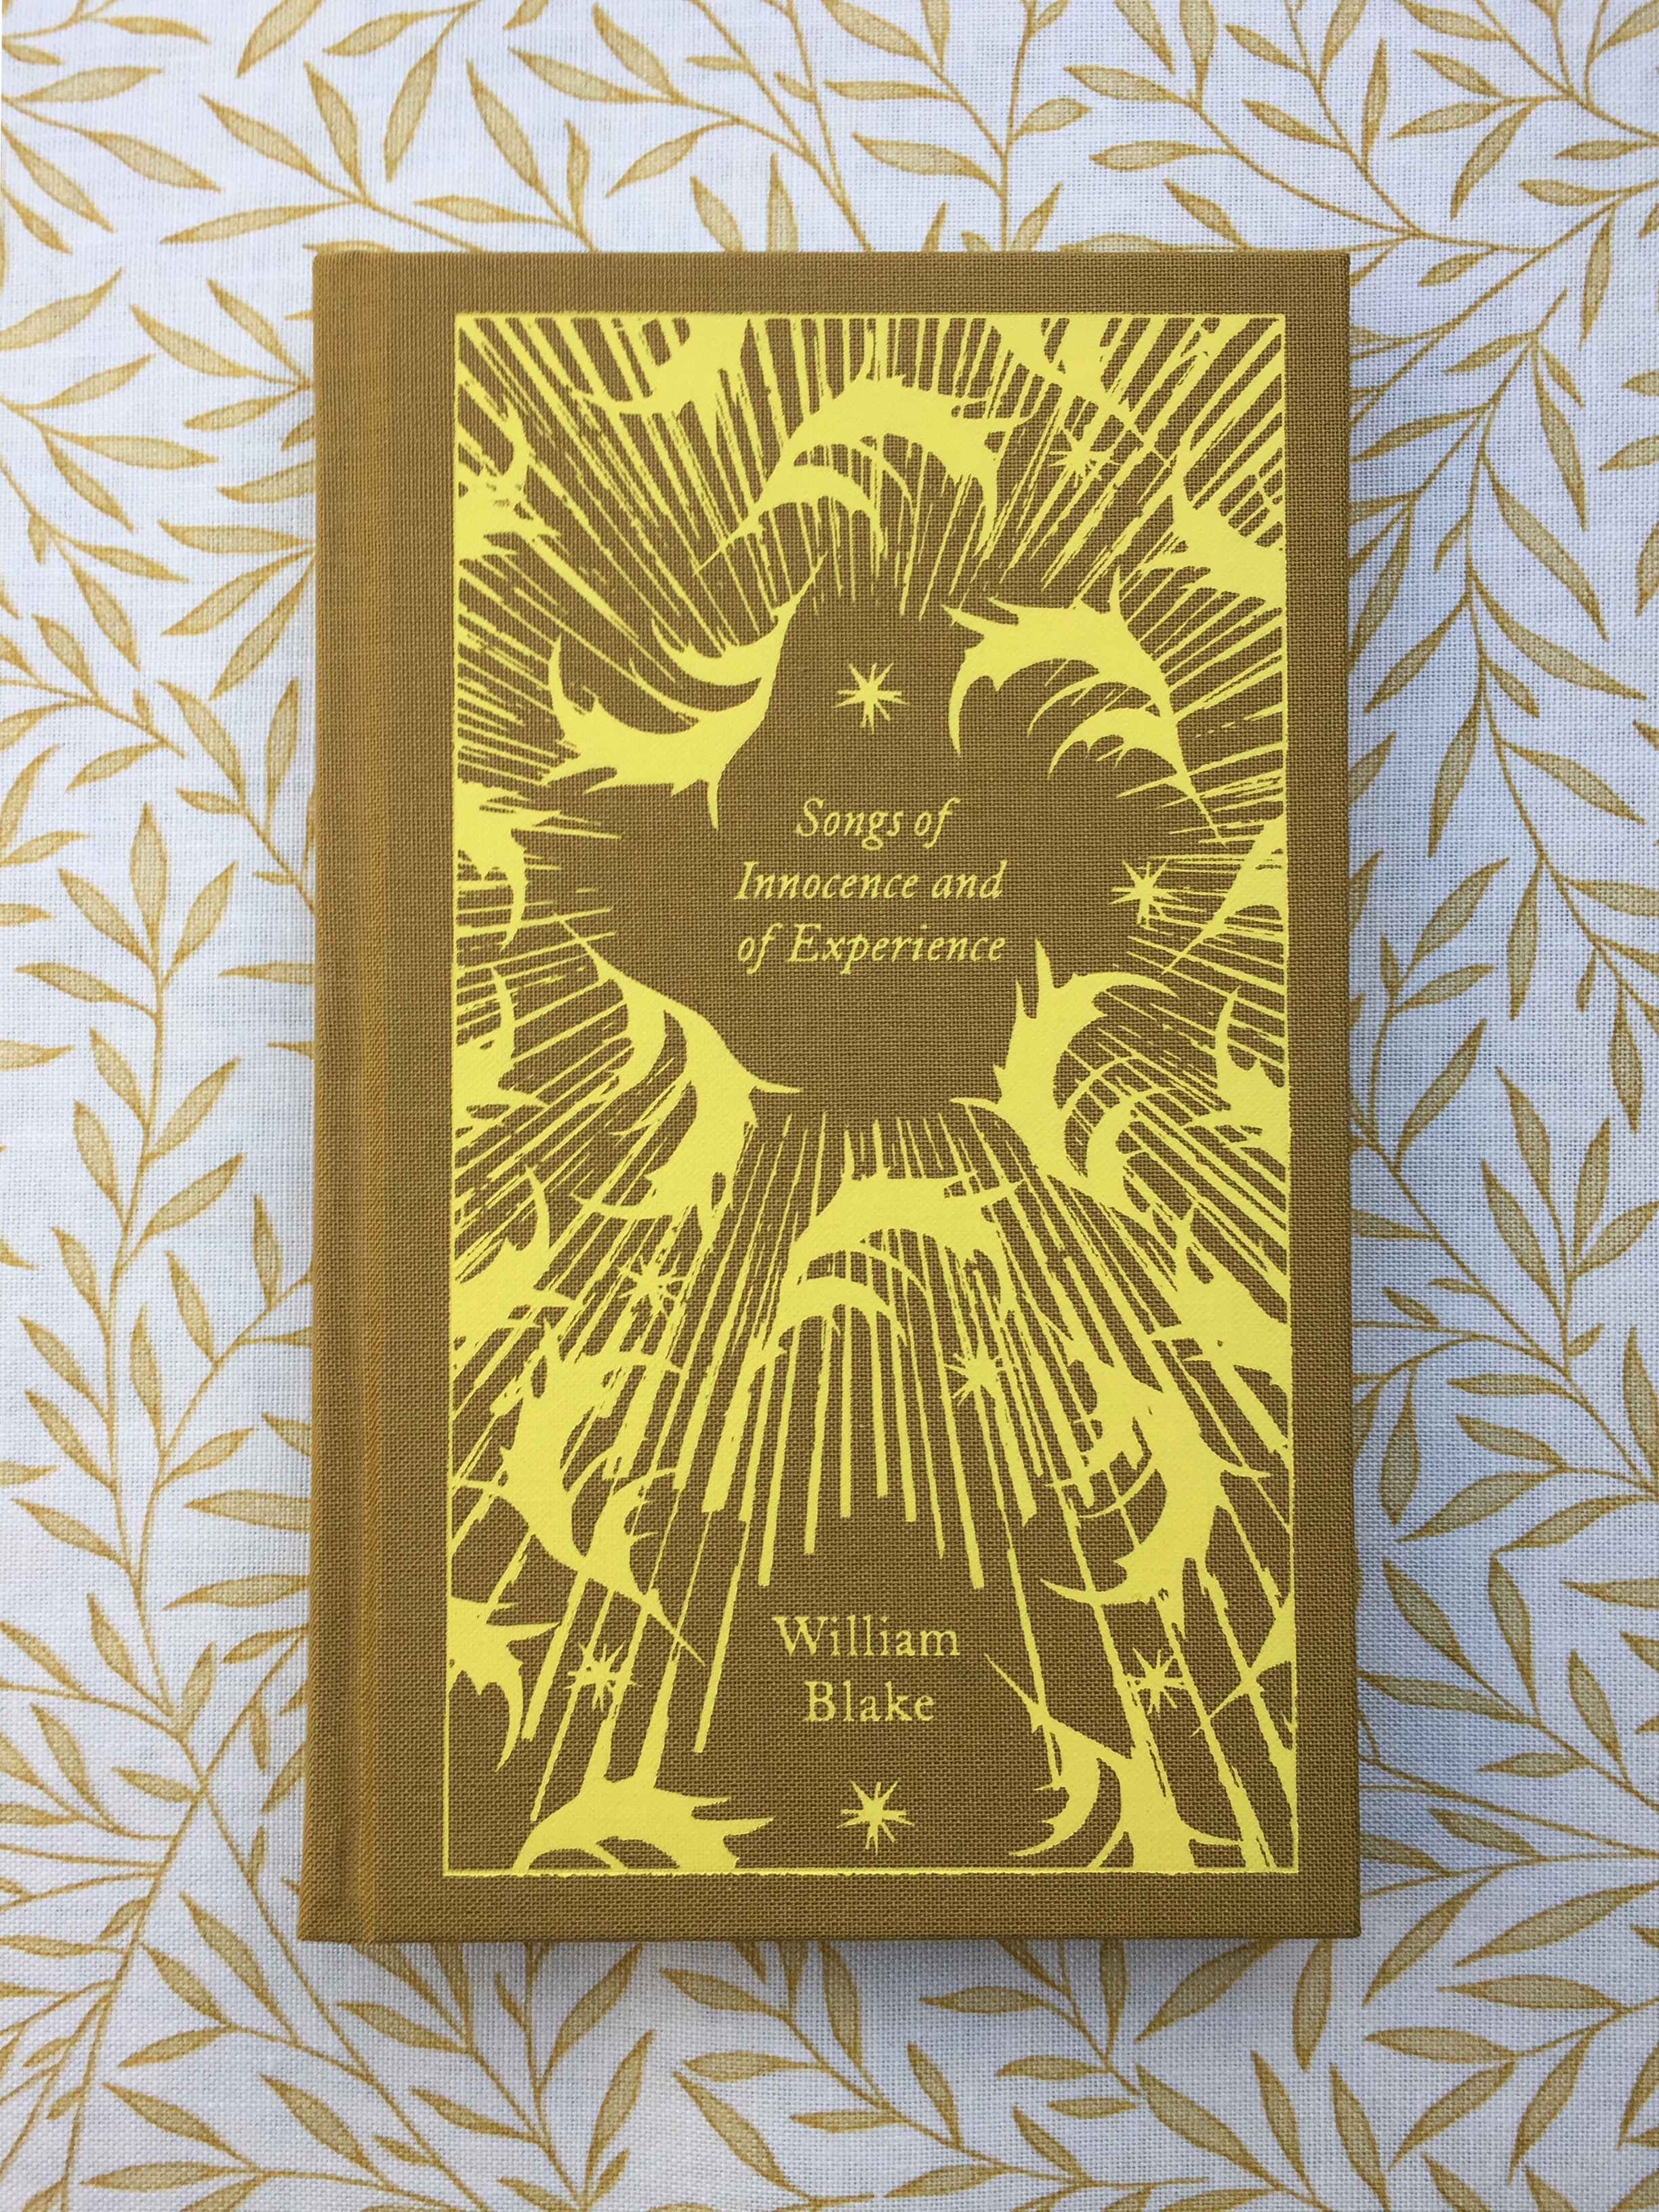 Coralie Bickford-Smith Cover Design Songs of Innocence and Experience